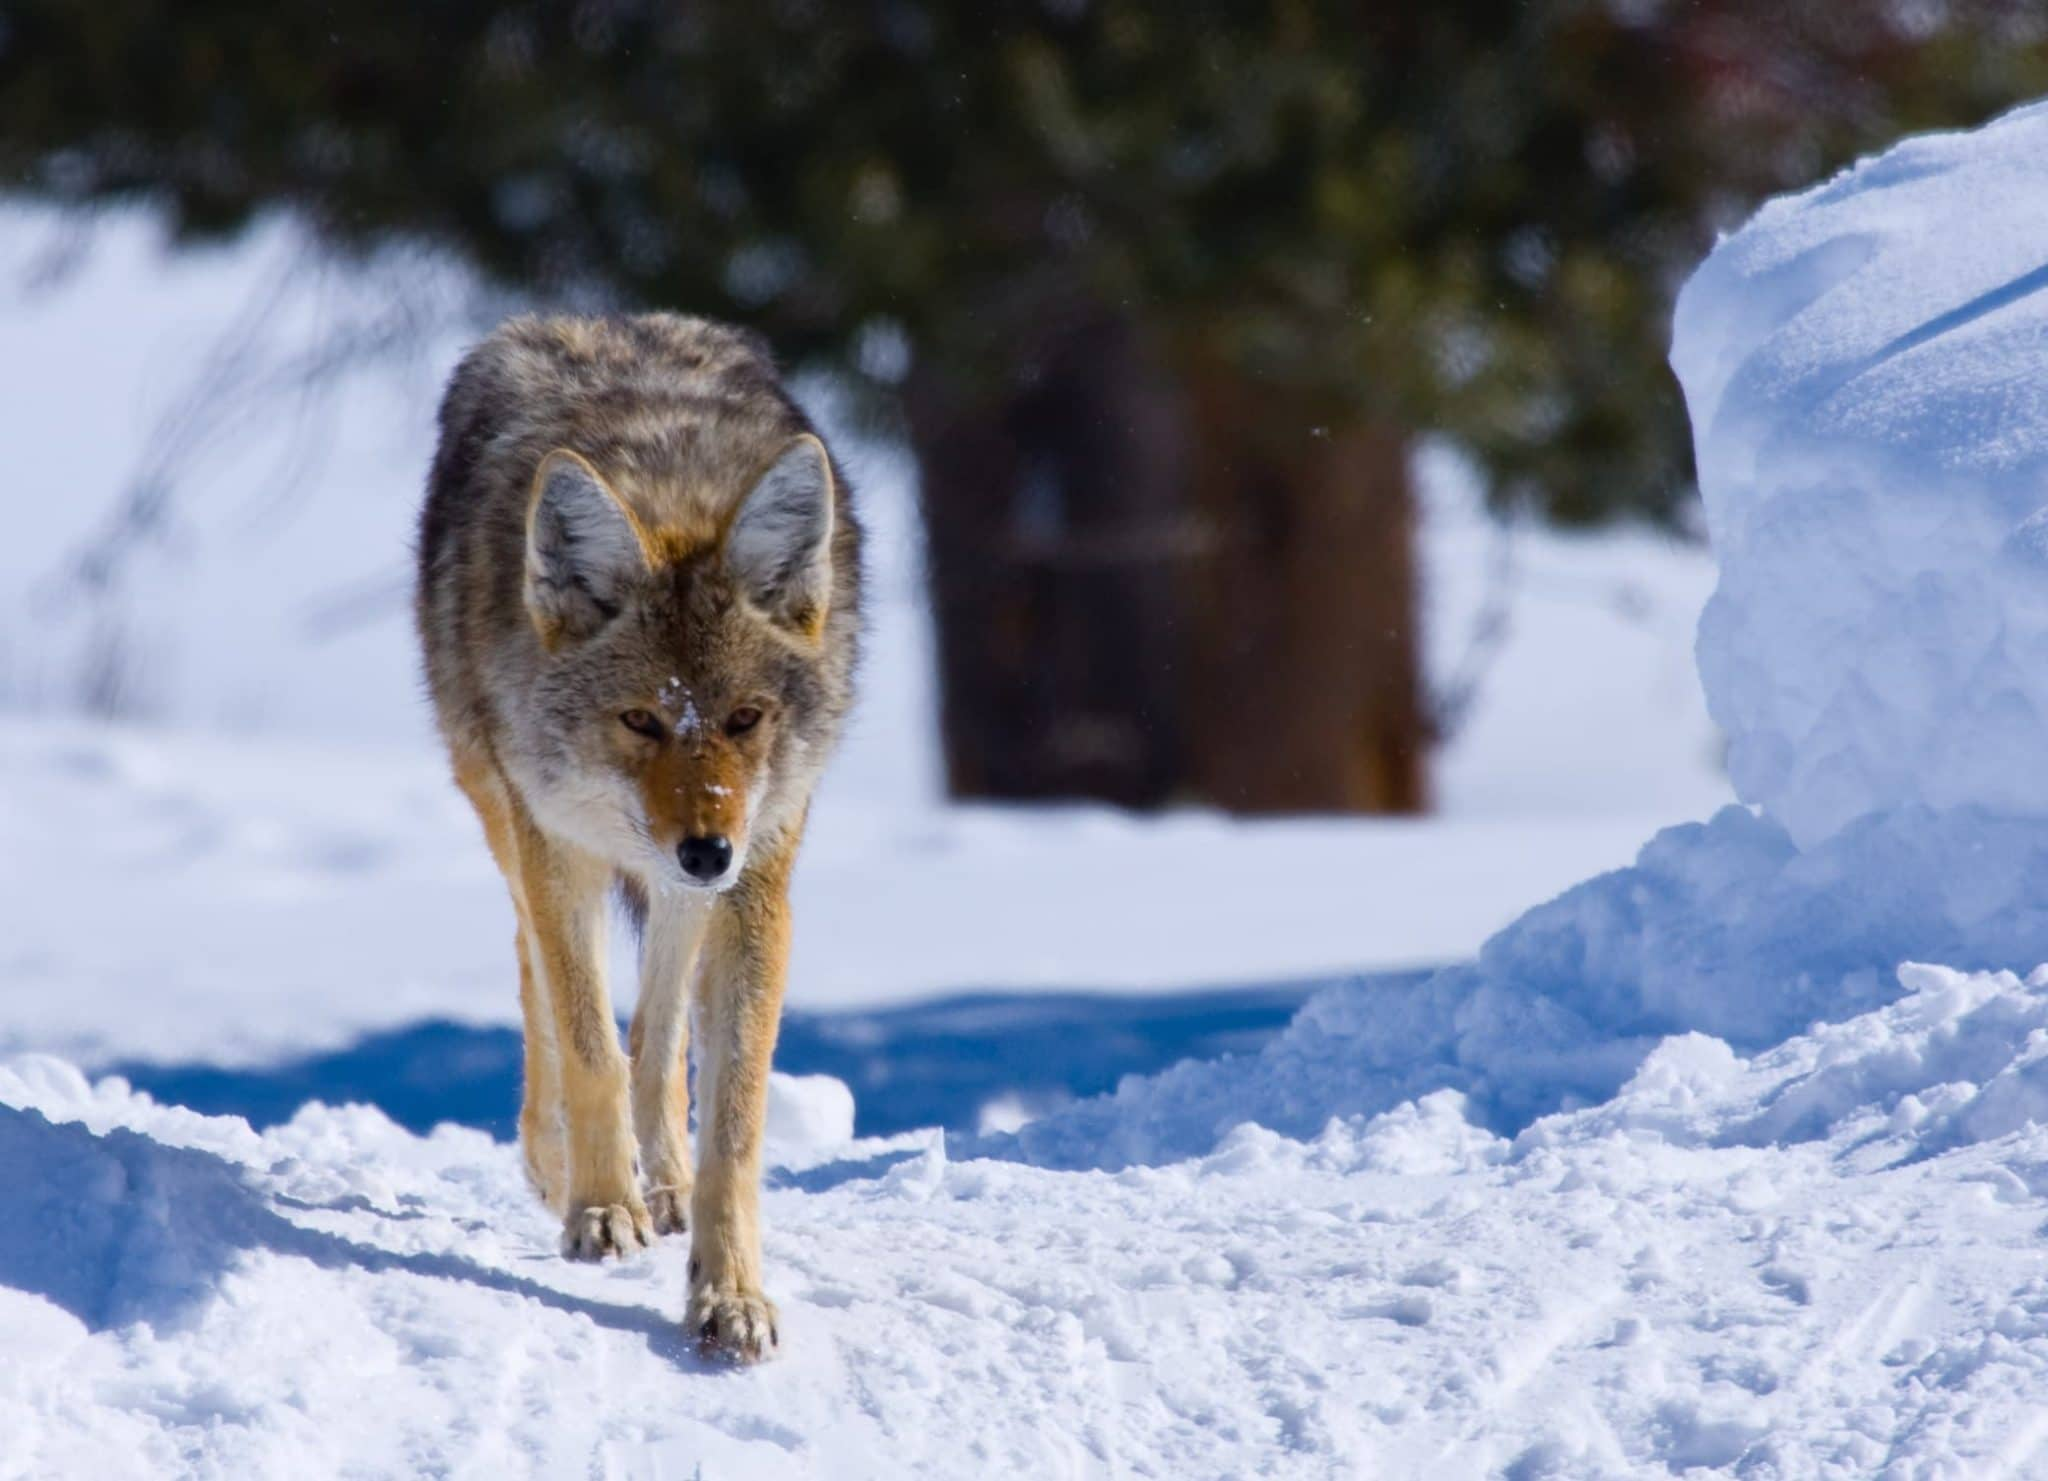 Coyote in the Snow in Yellowstone National Park